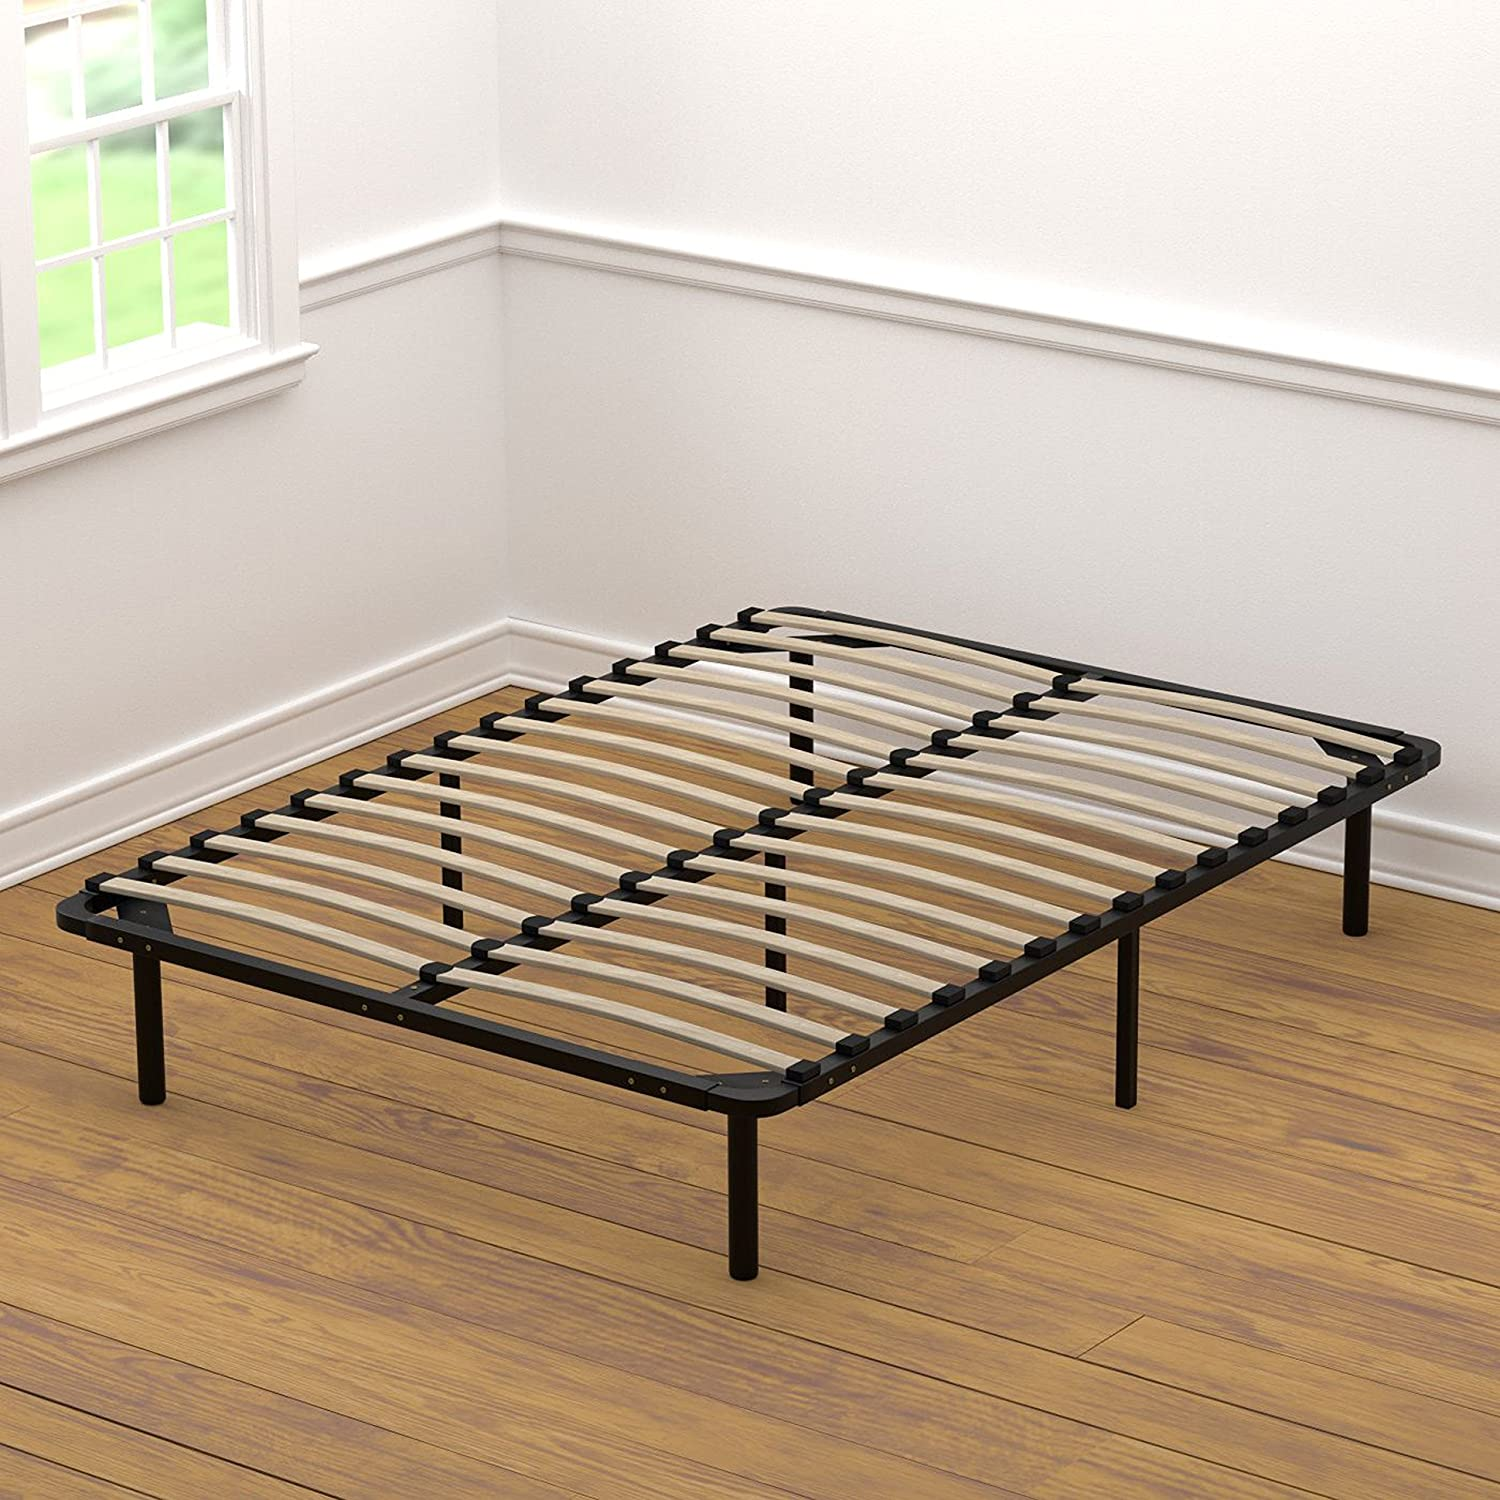 Full Bed Frame